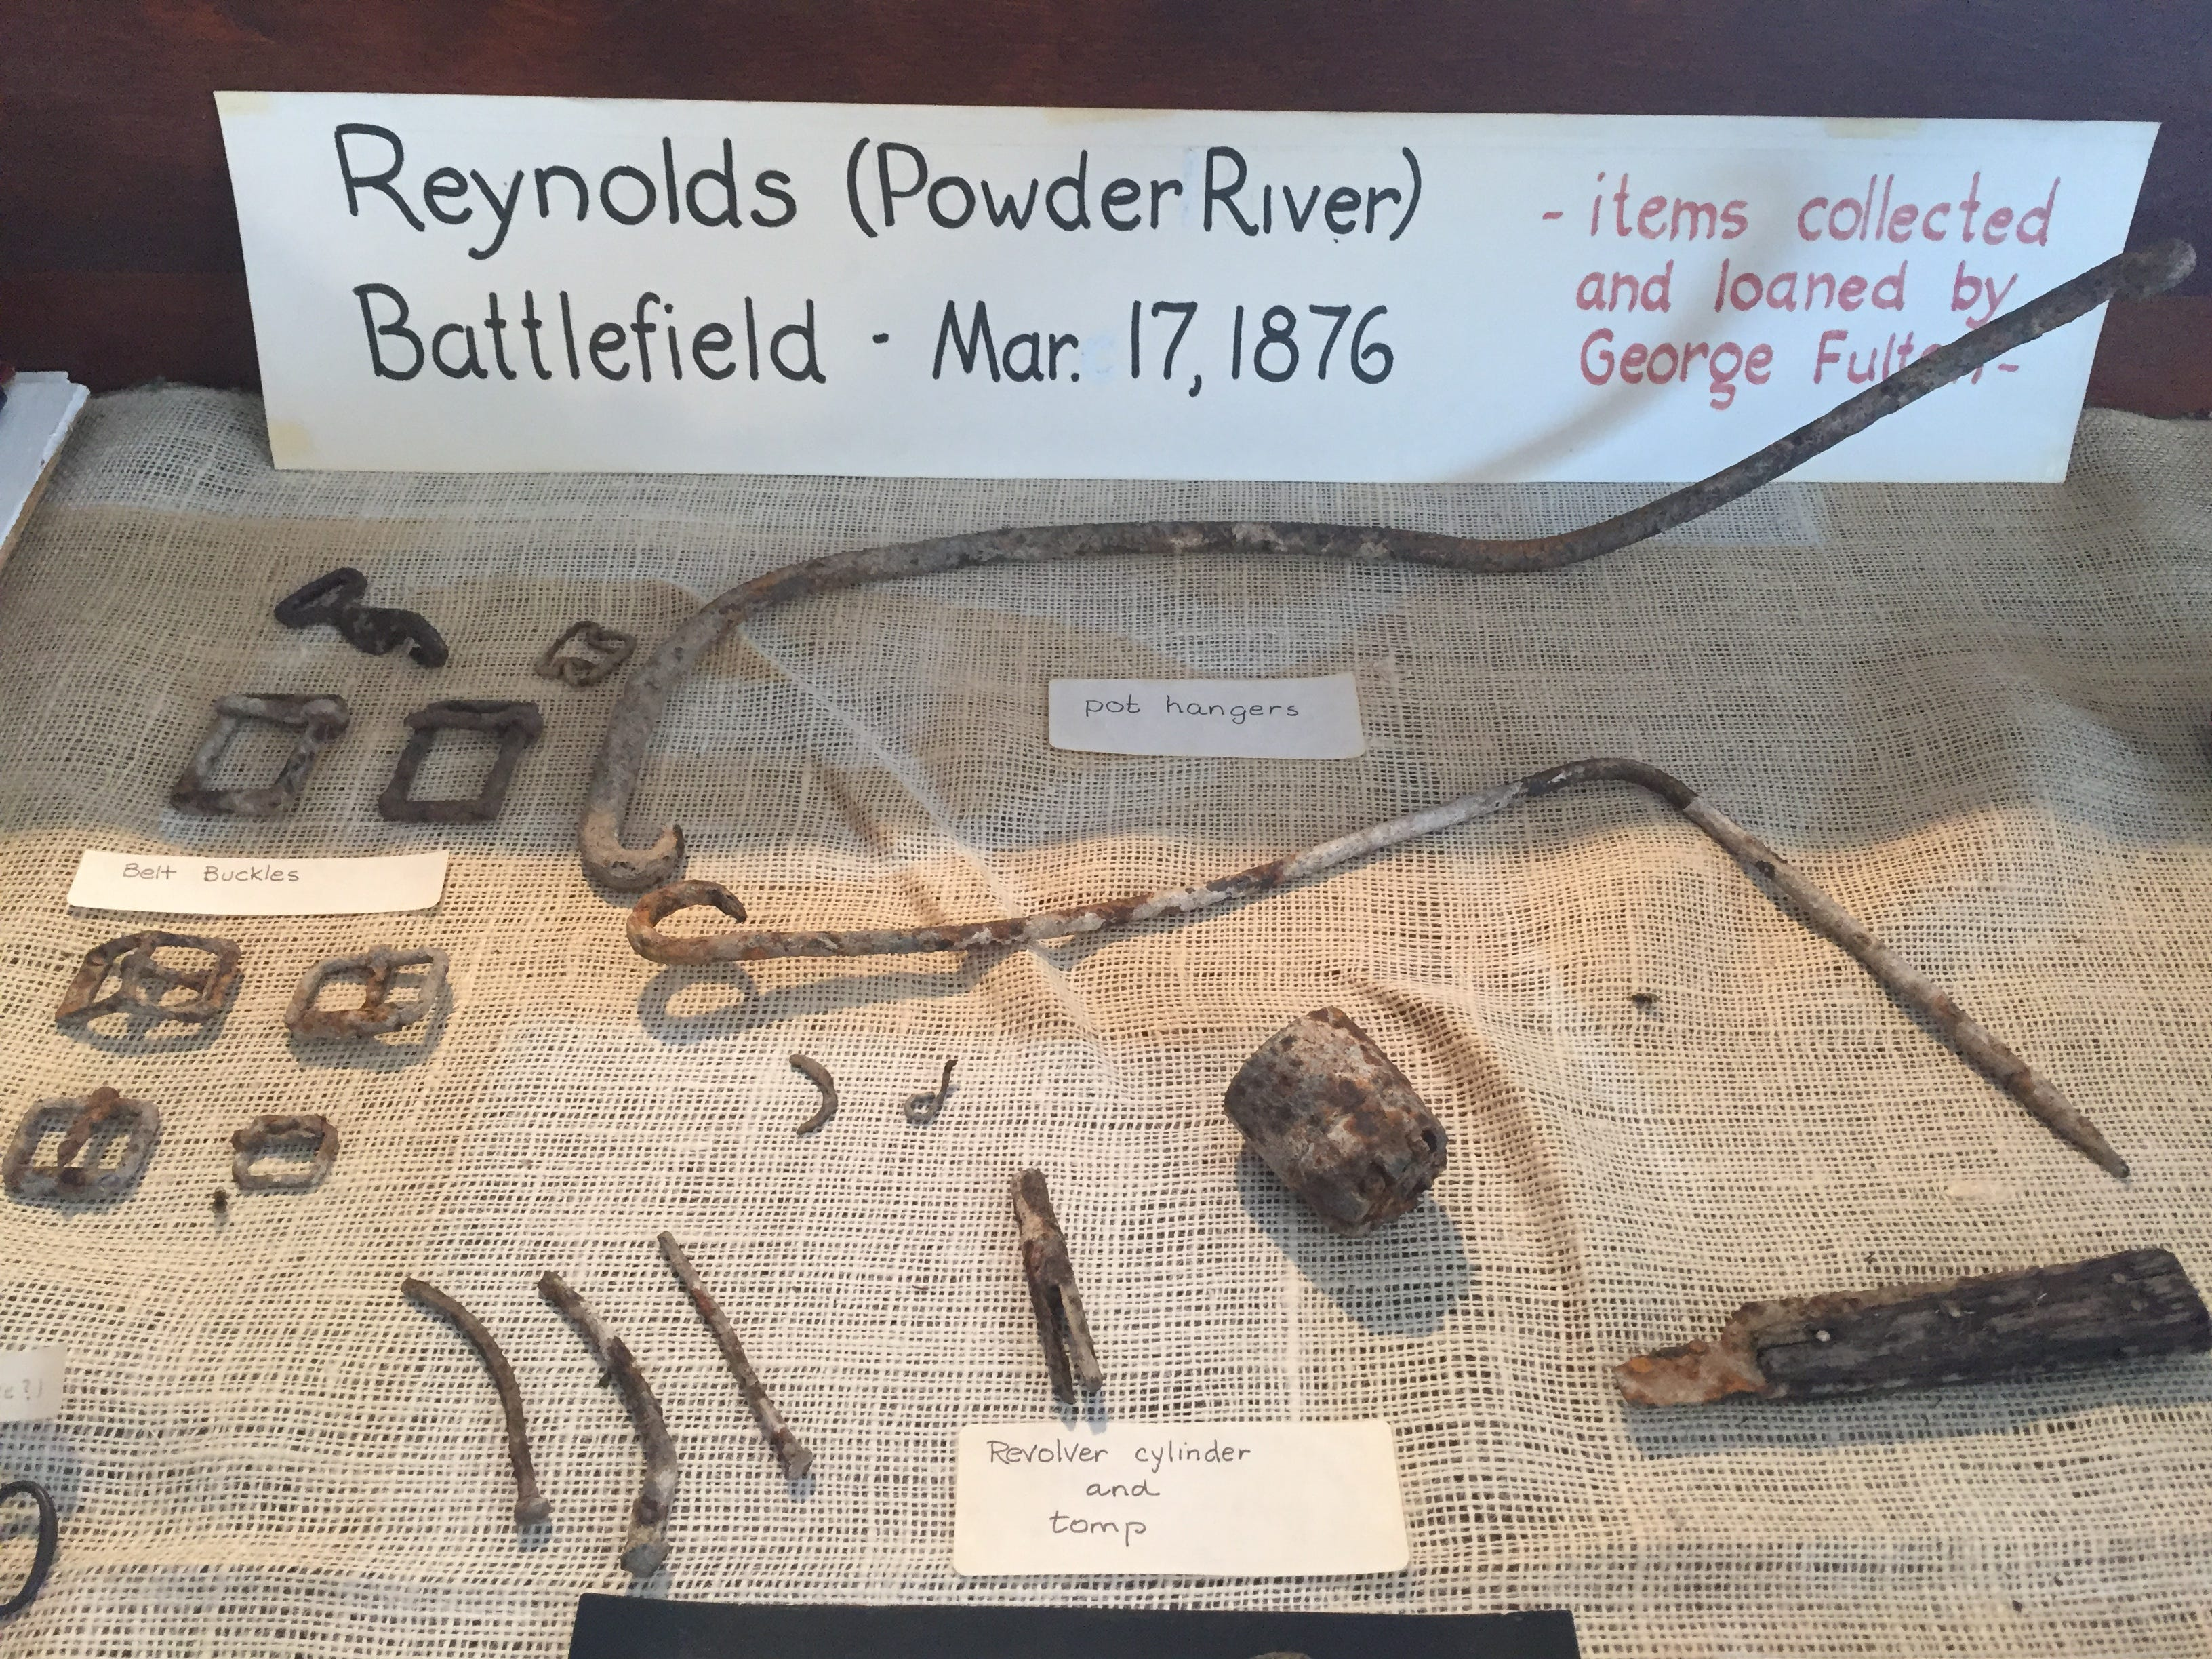 Artifacts from the Reynolds Battlefield are on display at the Powder River Historical Museum in Broadus.